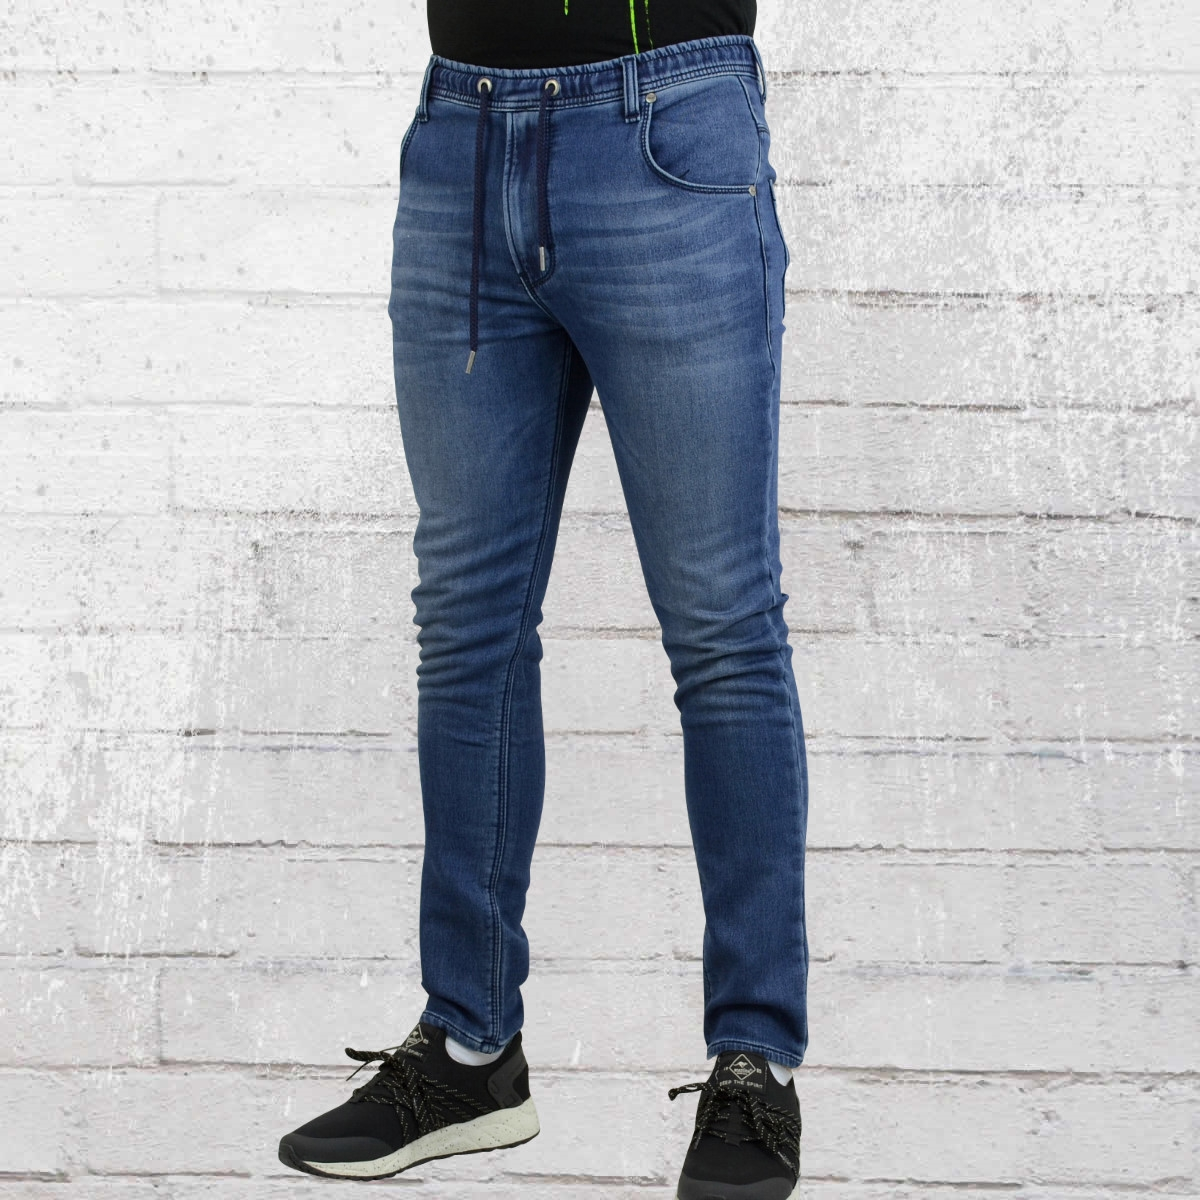 jetzt bestellen reell herren skinny hose jogger jeans vintage blau krasse. Black Bedroom Furniture Sets. Home Design Ideas